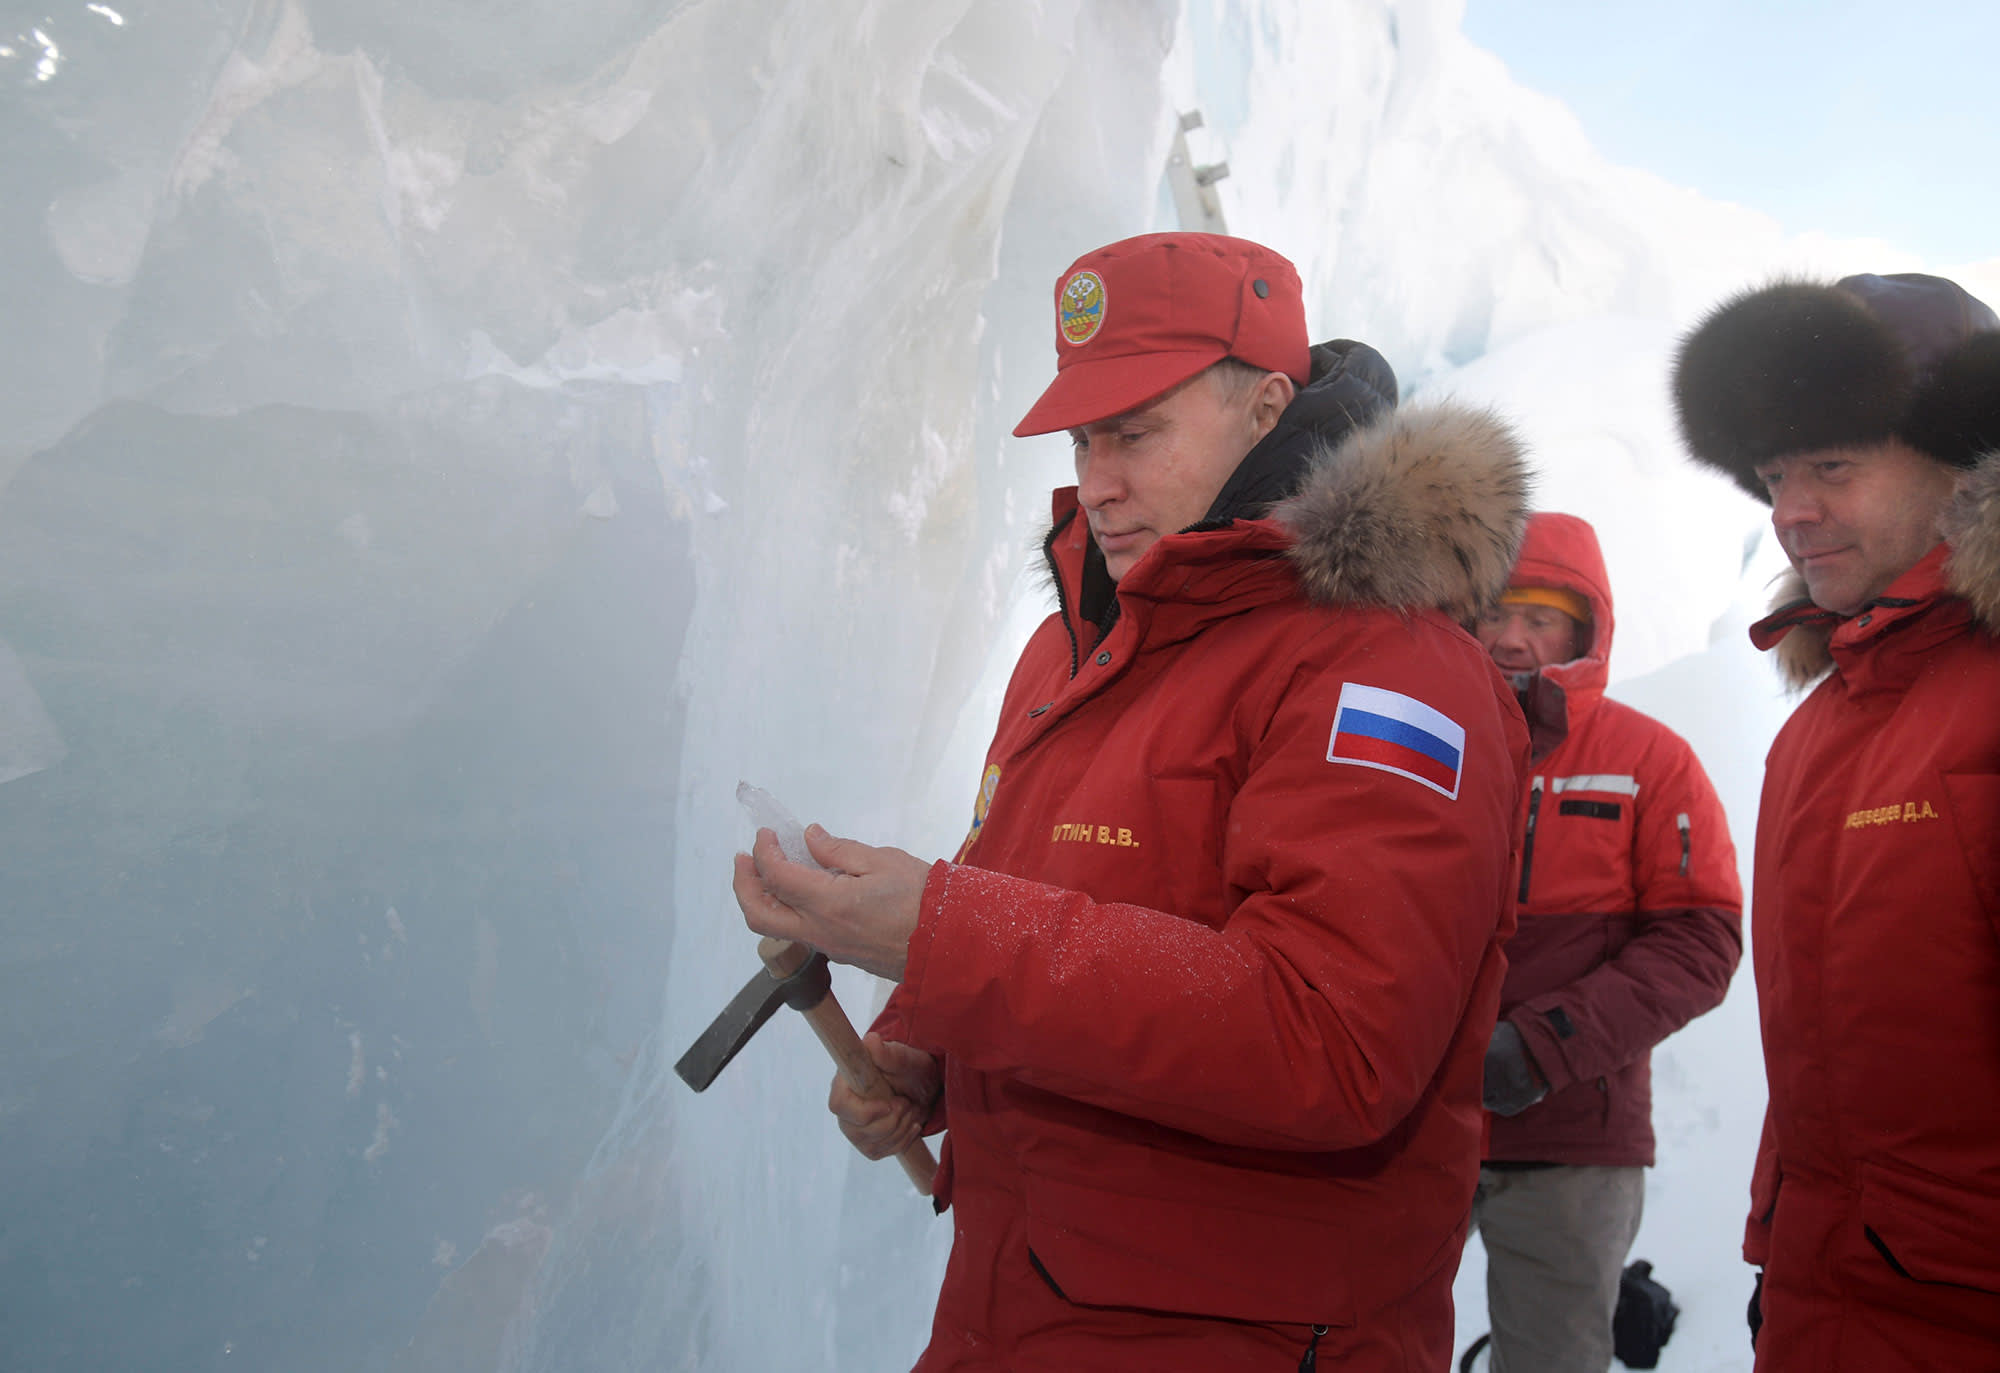 Russian President Vladimir Putin and Prime Minister Dmitry Medvedev visit the cave of Arctic Pilots Glacier in Alexandra Land in remote Arctic islands of Franz Josef Land, Russia March 29, 2017.